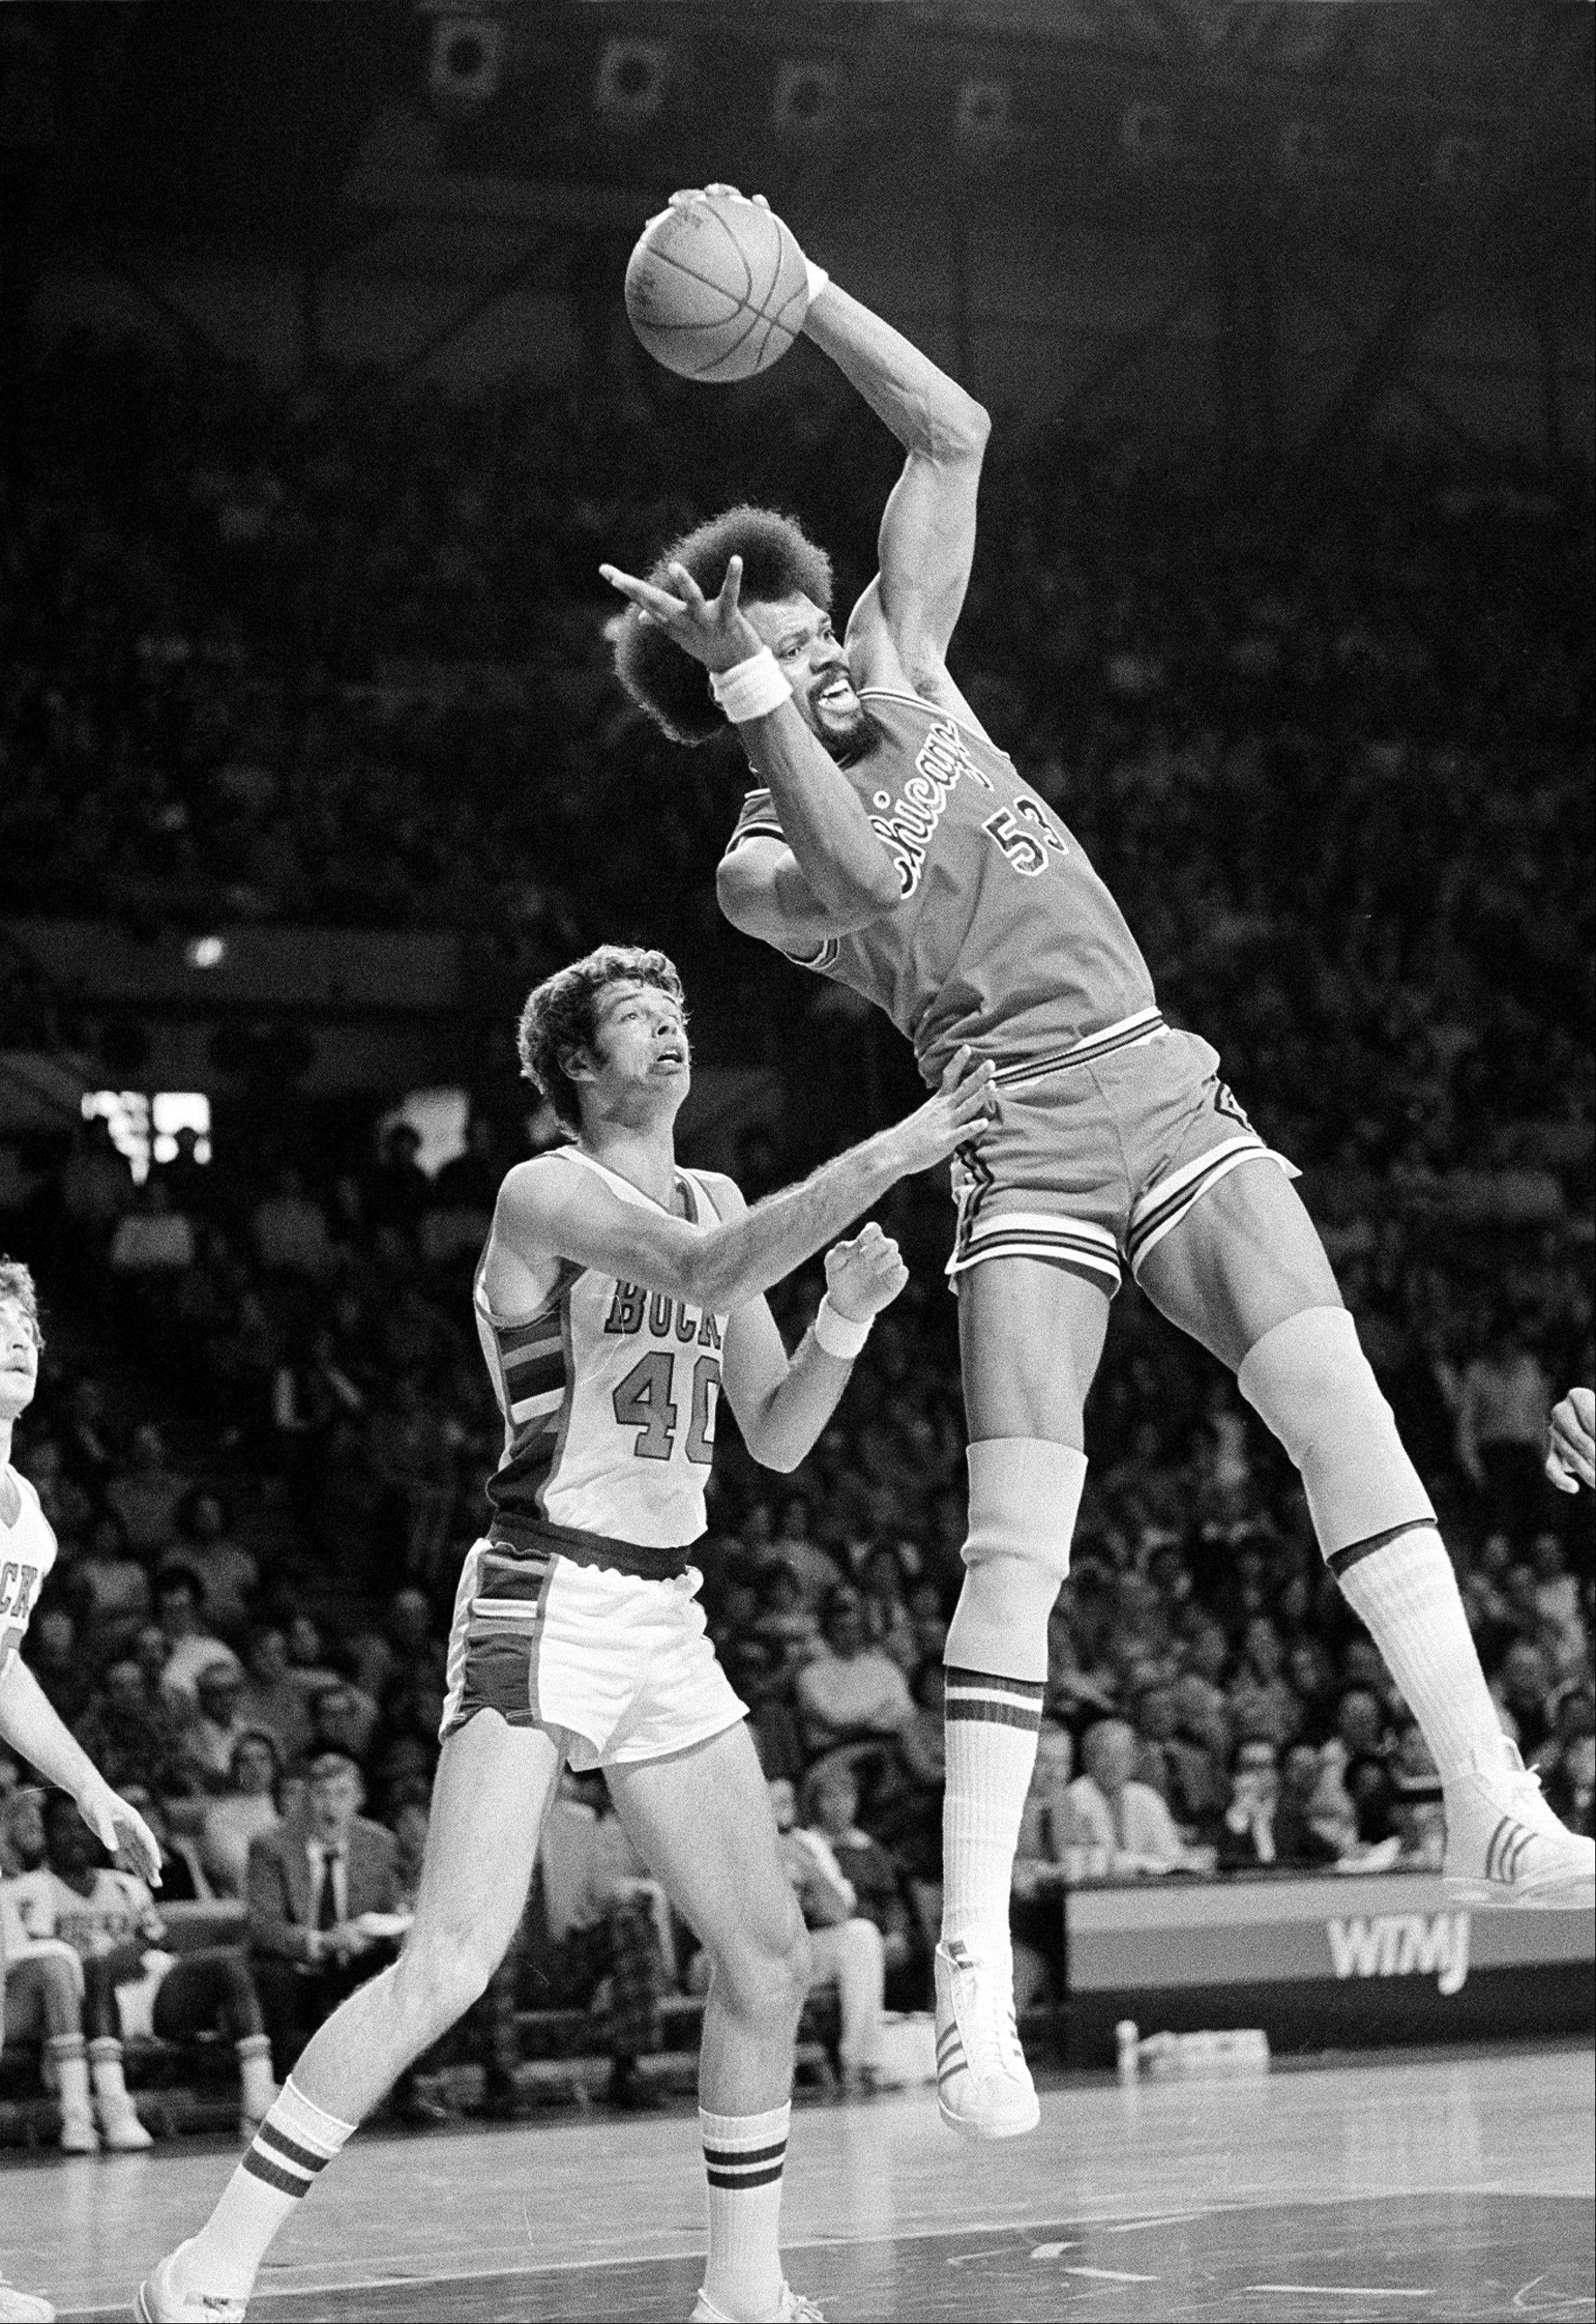 Chicago Bulls center Artis Gilmore (53) leaps high and pulls down a pass in front of Milwaukee Bucks center John Gianelli (40) during second quarter action Jan. 22, 1978 in Milwaukee.